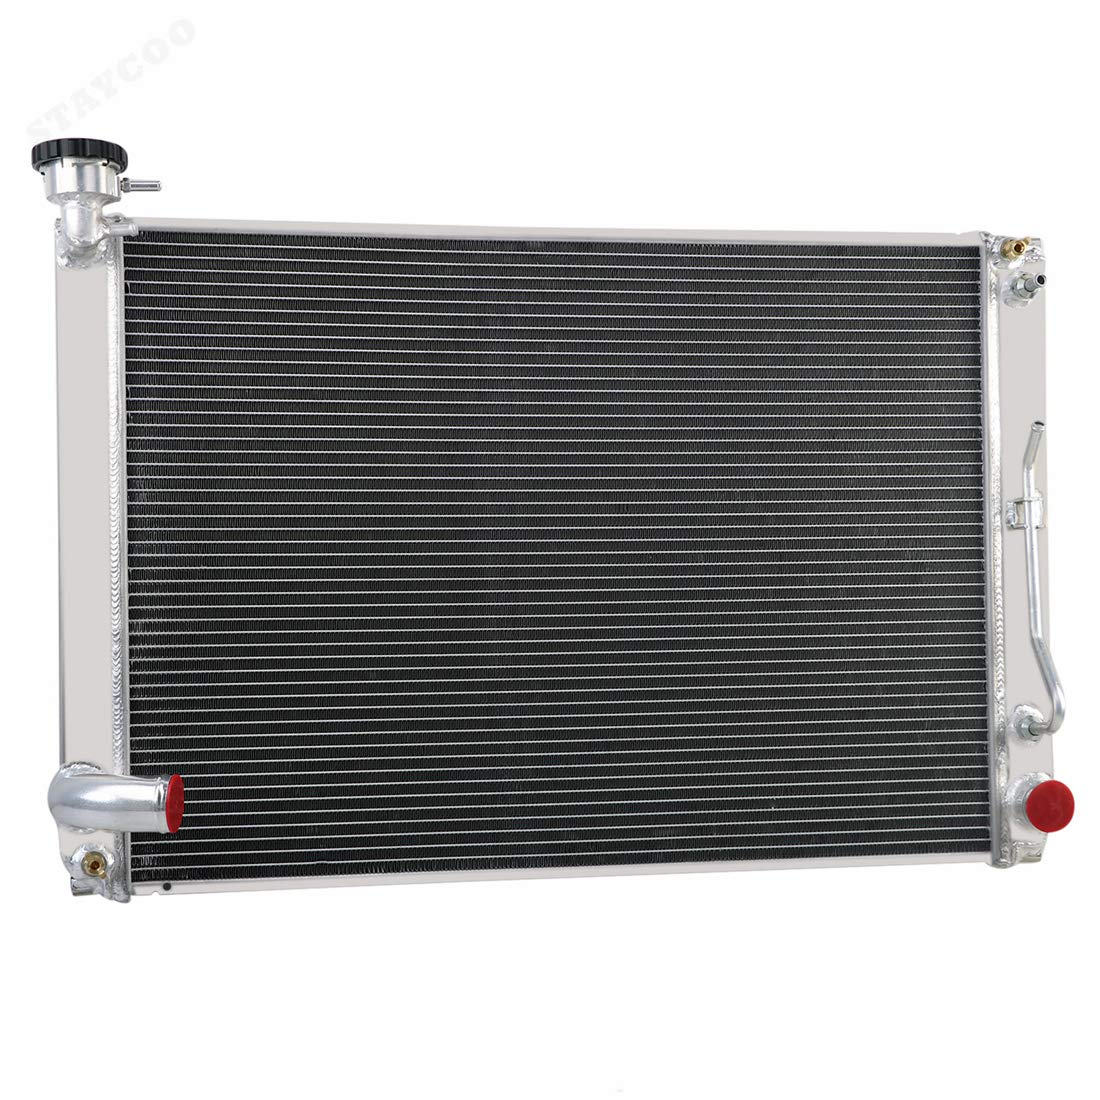 Cooling Direct For//Fit 2682 04-05 Toyota Sienna 3.3L w// Tow Package All Aluminum Radiator